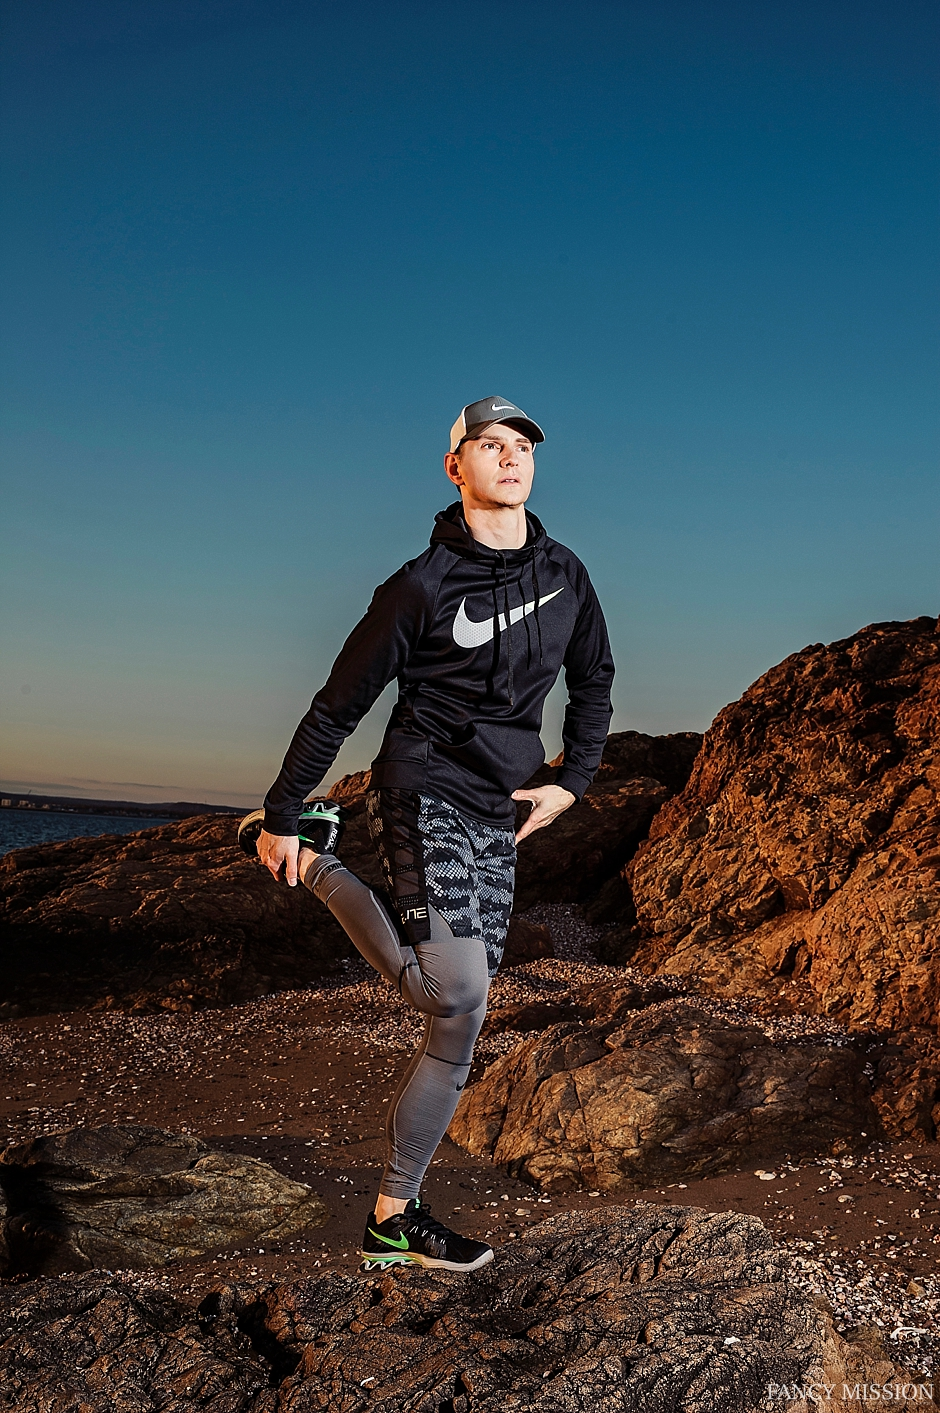 fitness goals at sunrise with nike fashion - Fancy Mission Hubert Kopec